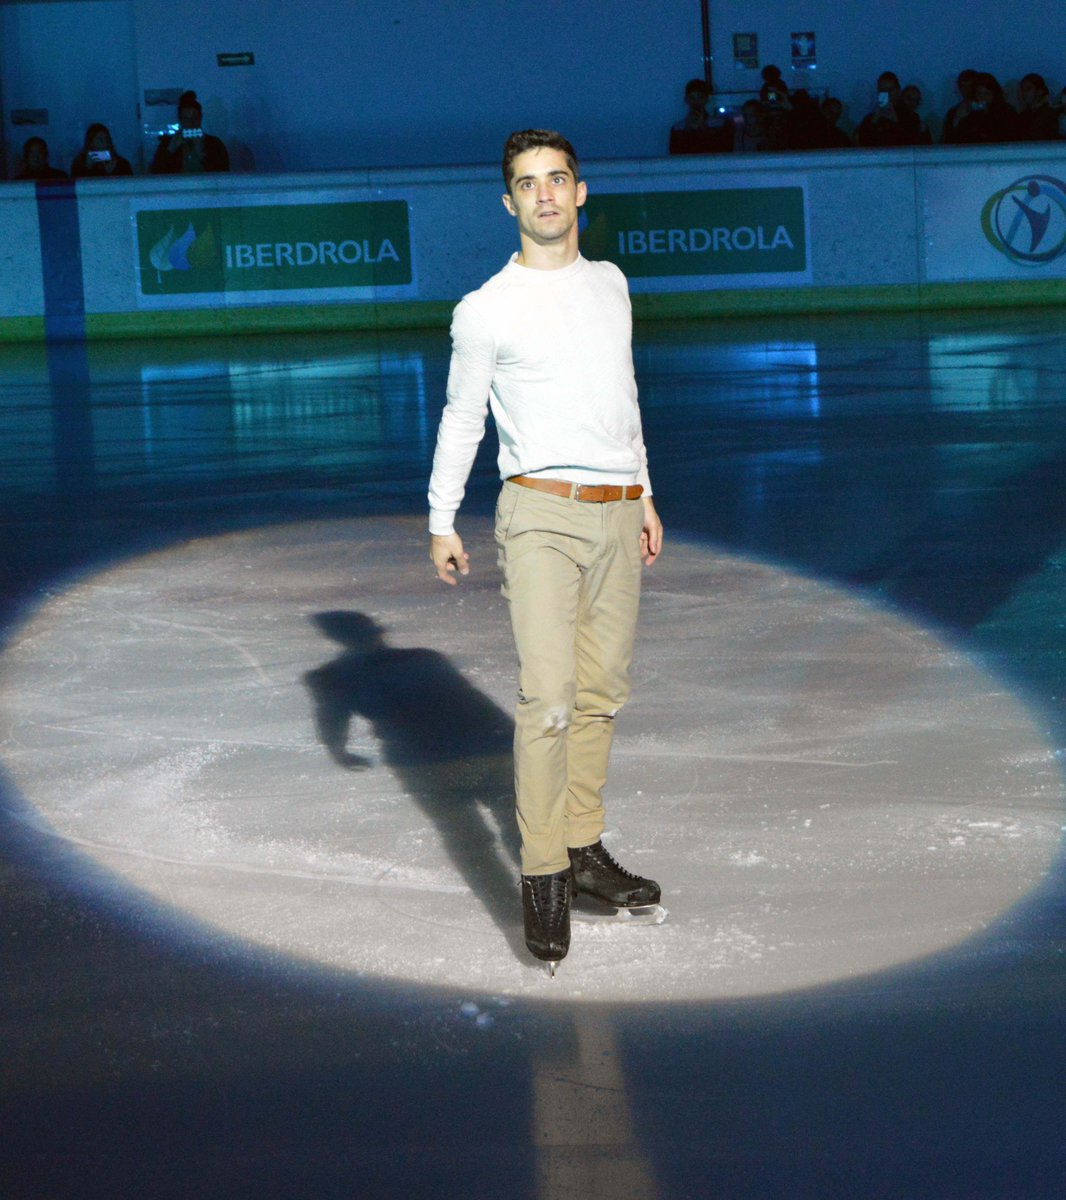 Javier Fernandez (ESP) takes to the exhibition ice at Spanish Nationals (Photo credit:    Hieloespanol   )